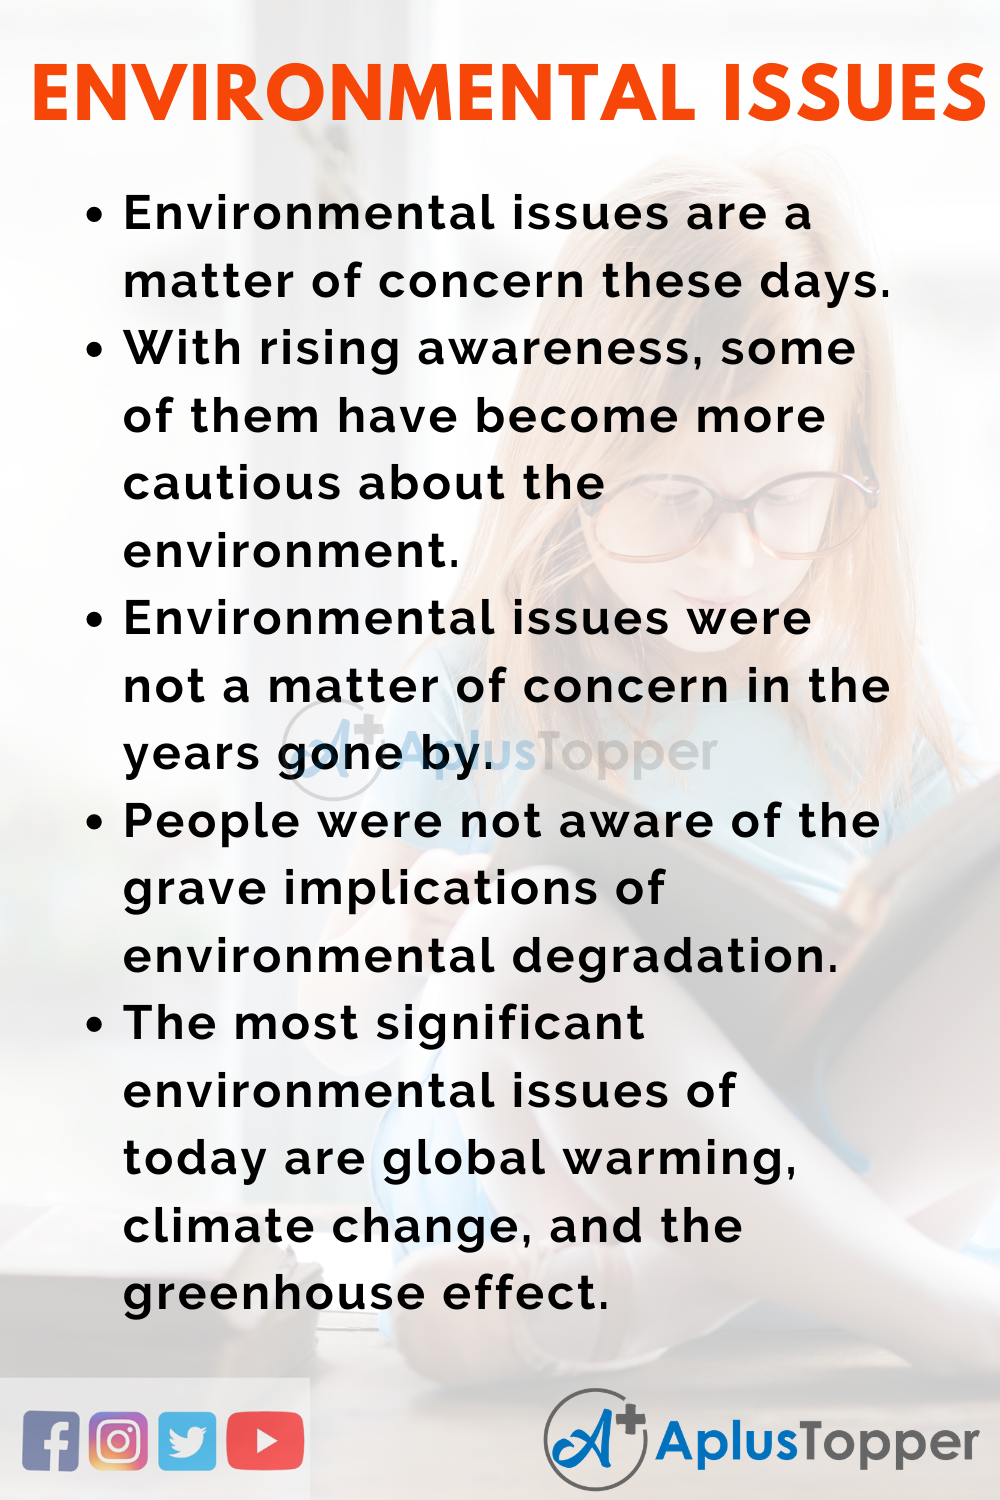 Essay about Environmental issues